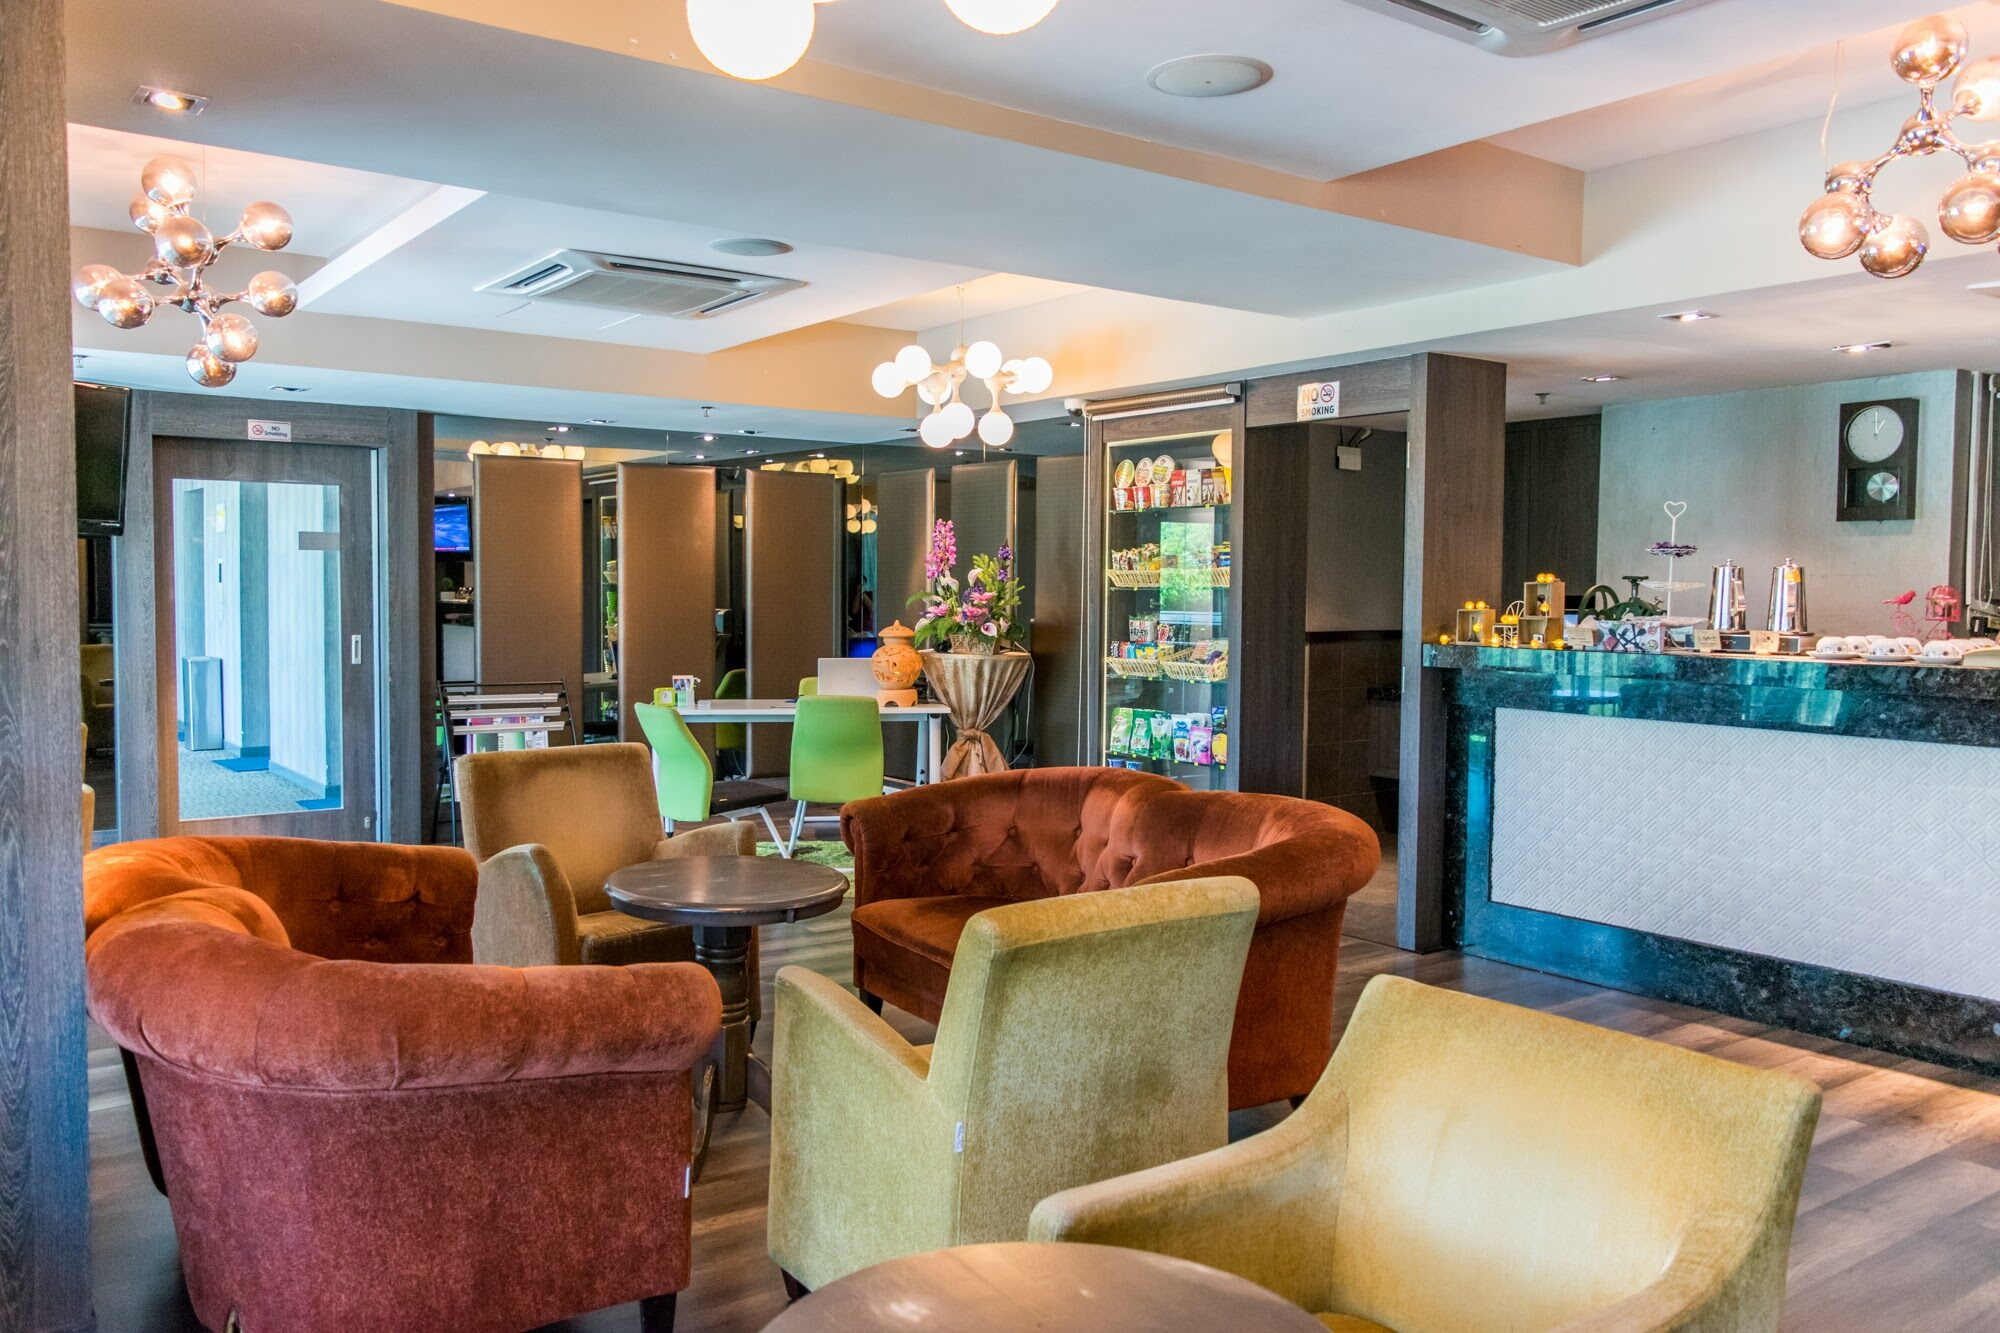 [Hotel Stay/Package] 2D1N MH Hotel Ipoh FREE Sunway Lost World of Tambun Hot Spring Night Park Entrance Ticket + Breakfast (Ipoh)